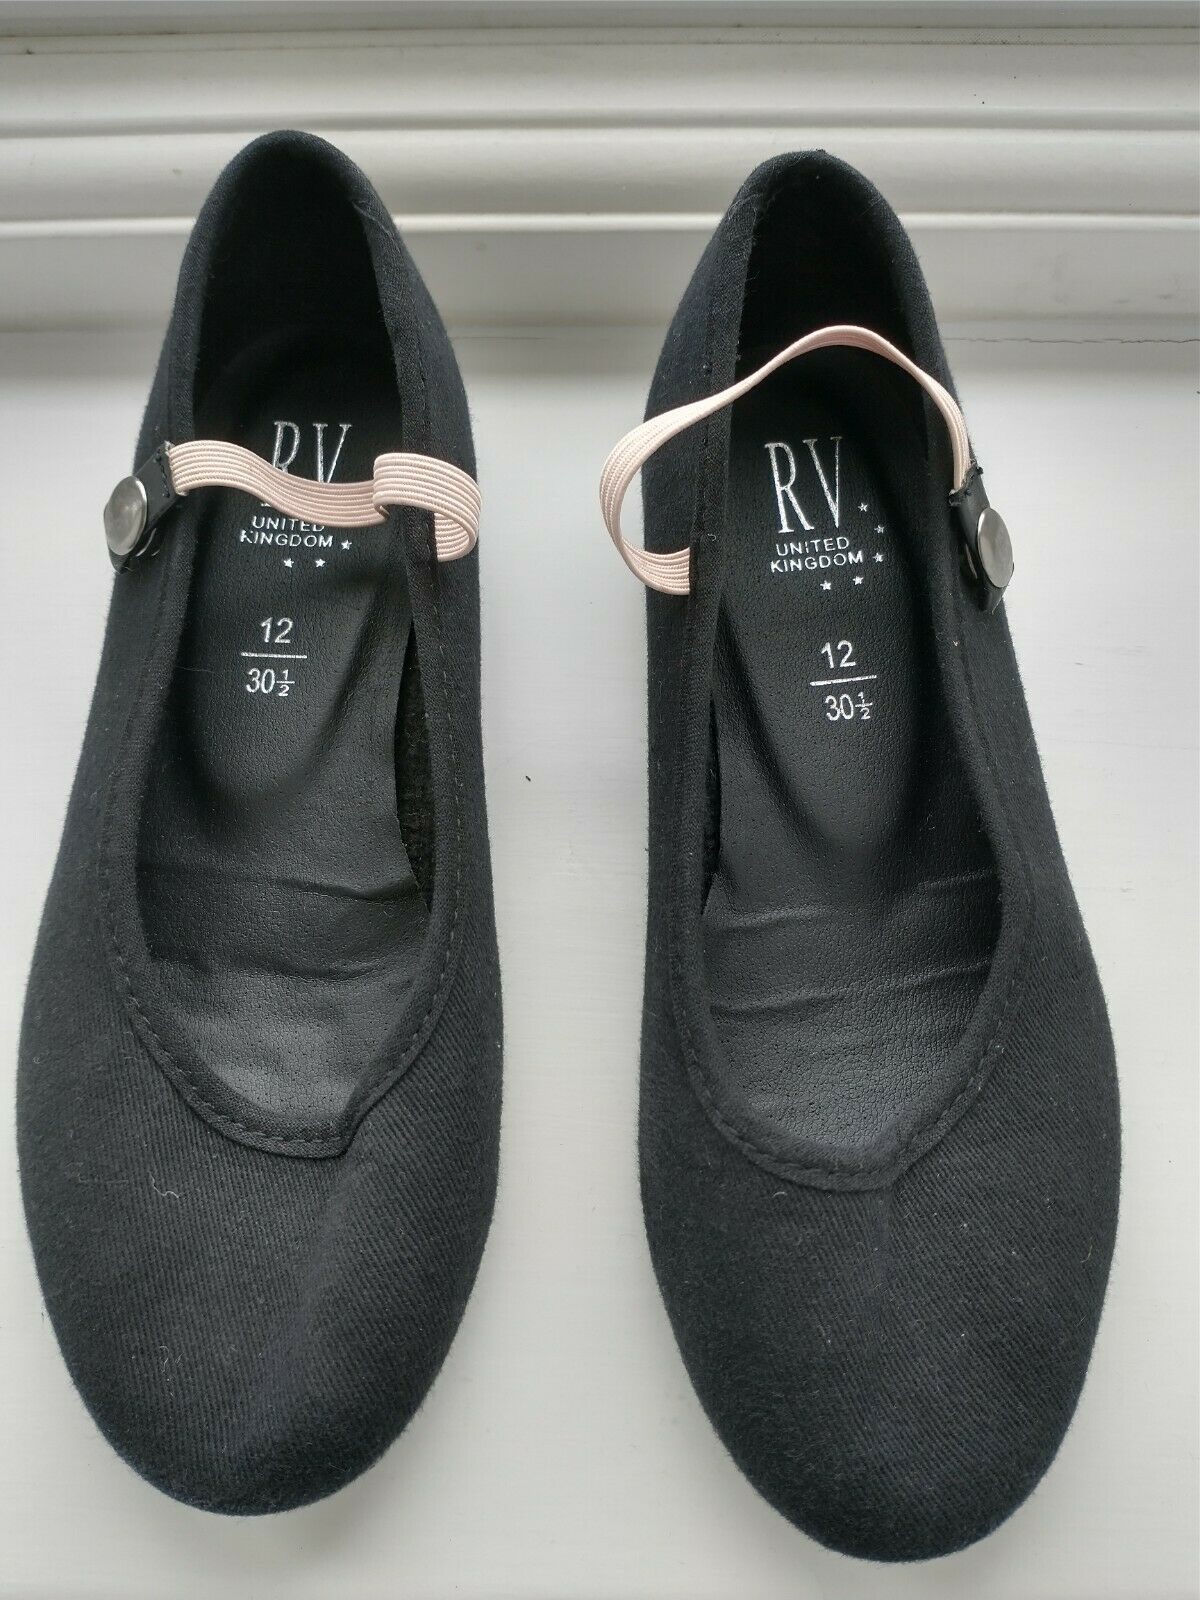 Girls Black Ballet Character Shoes size 12/30.5